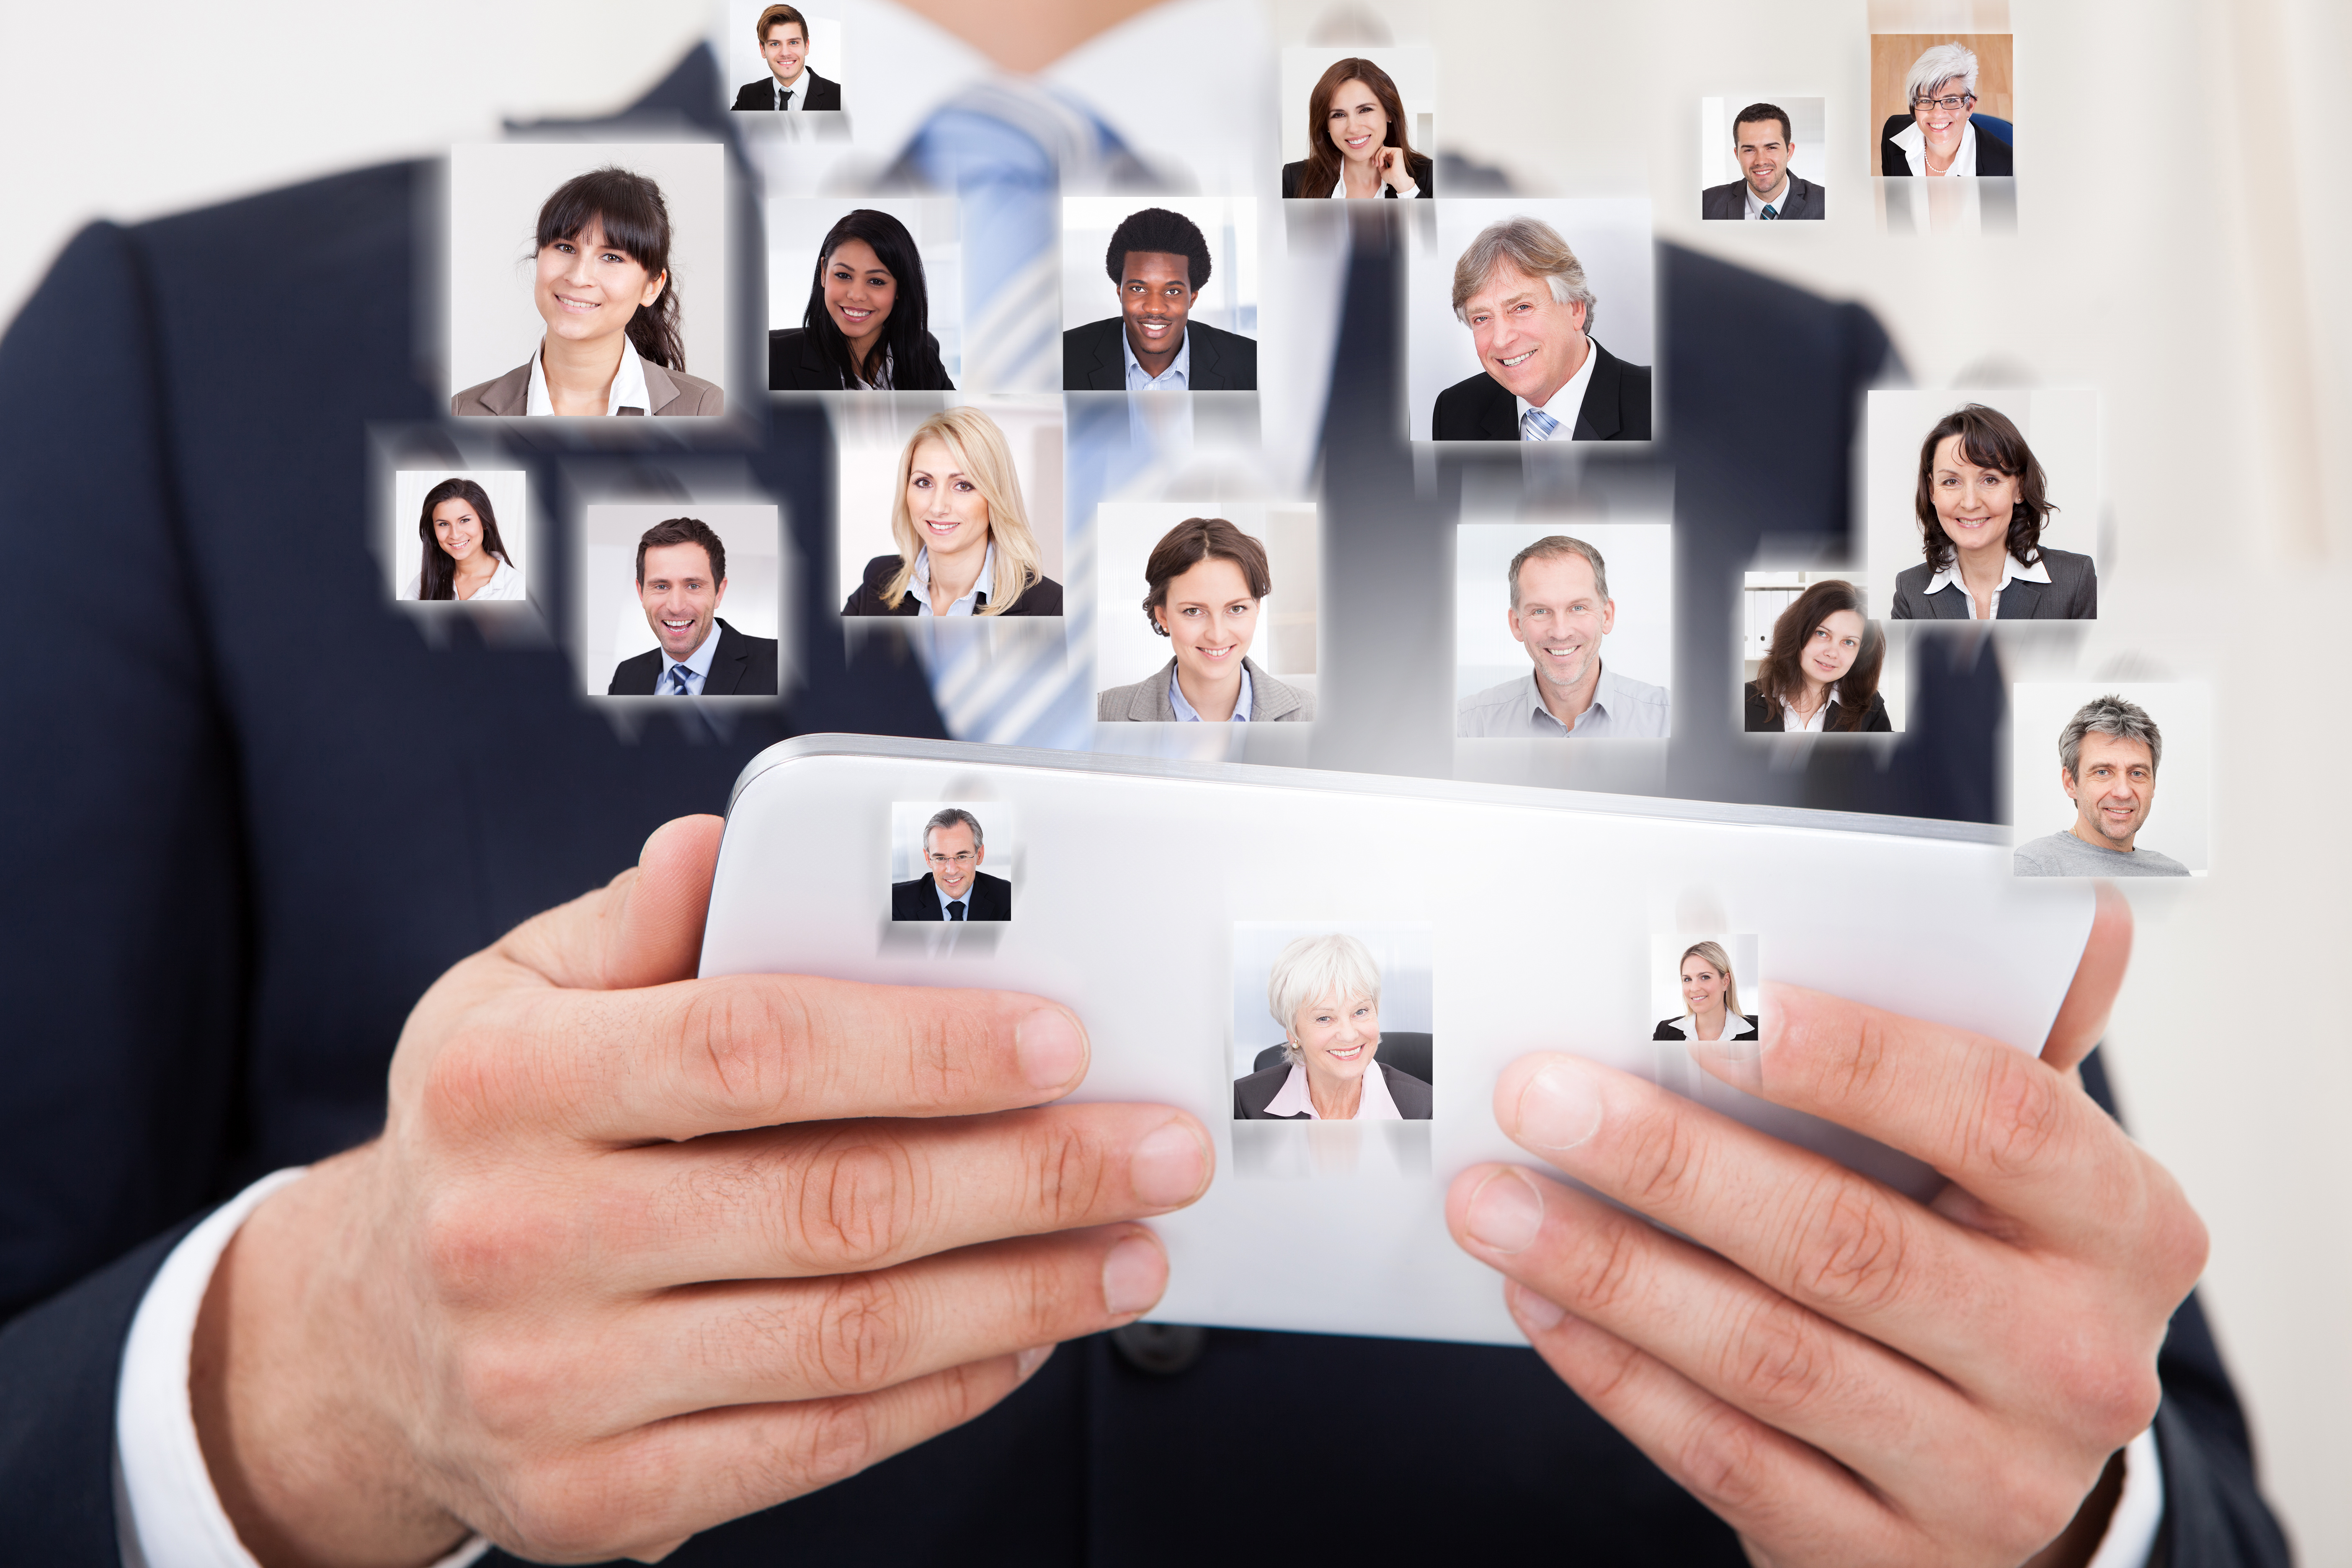 Collage of business people with businessman using digital tablet representing global communication